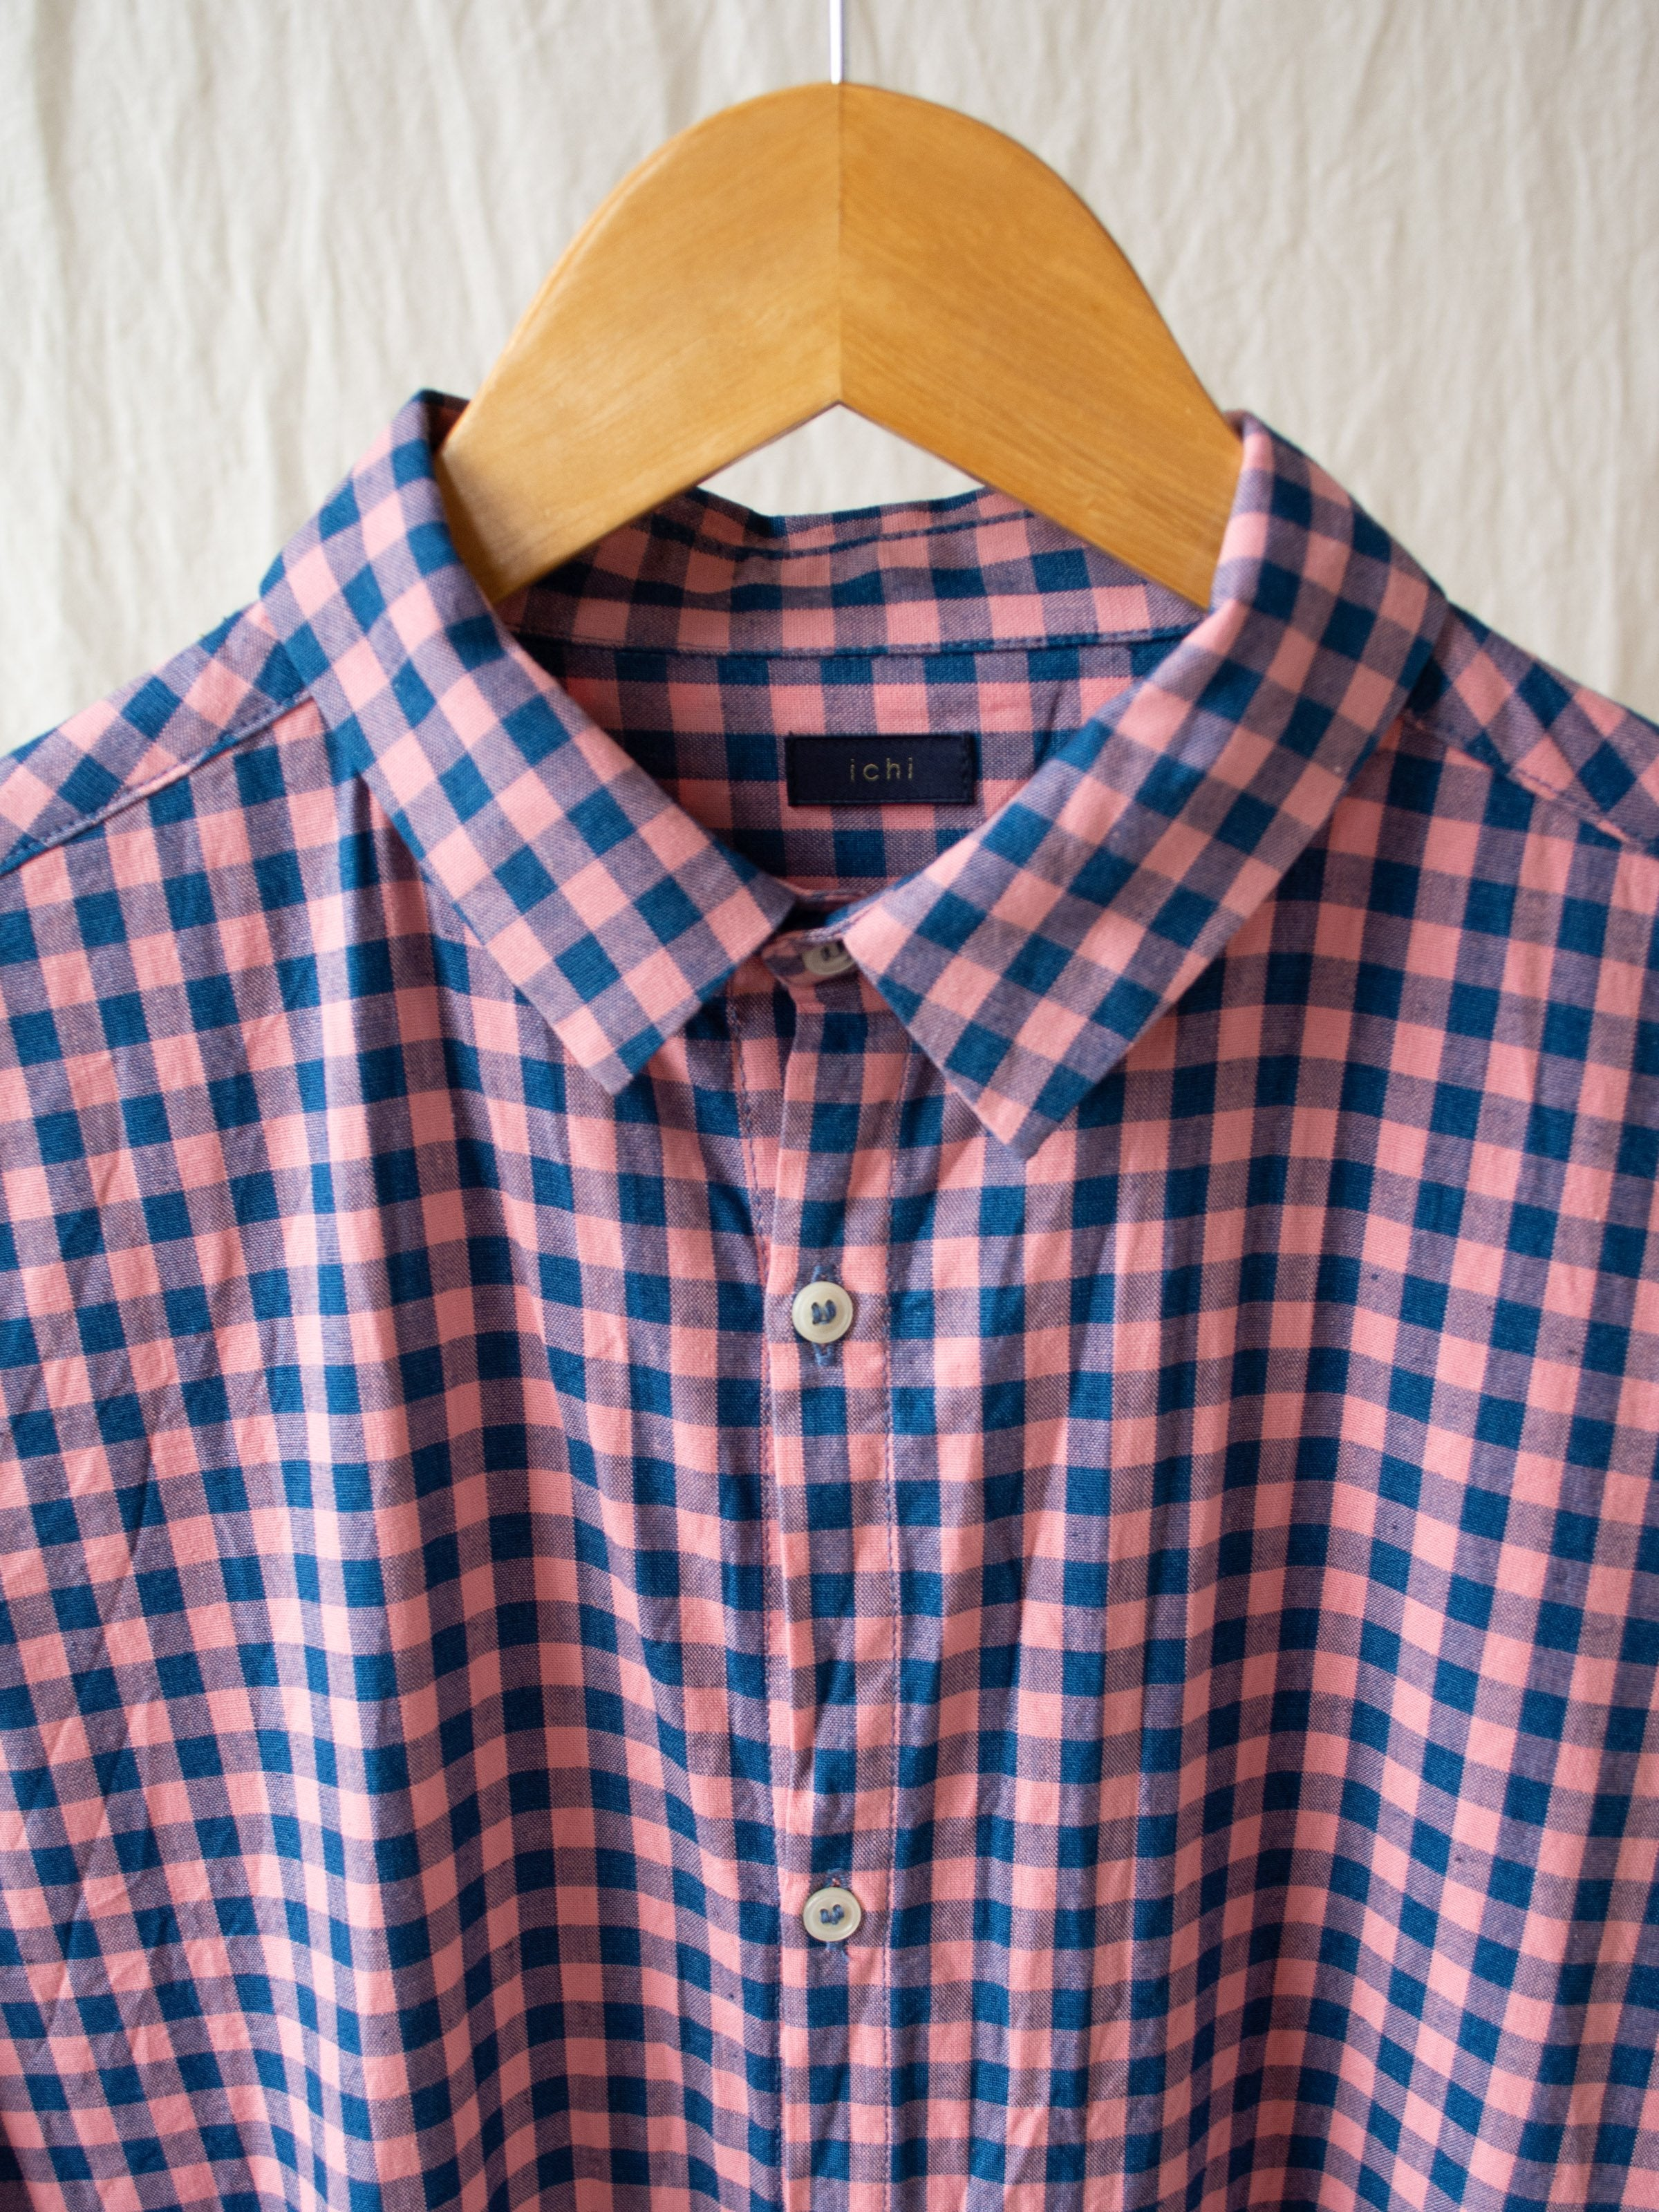 Namu Shop - Ichi Antiquites Pink x Indigo Gingham Shirt Dress